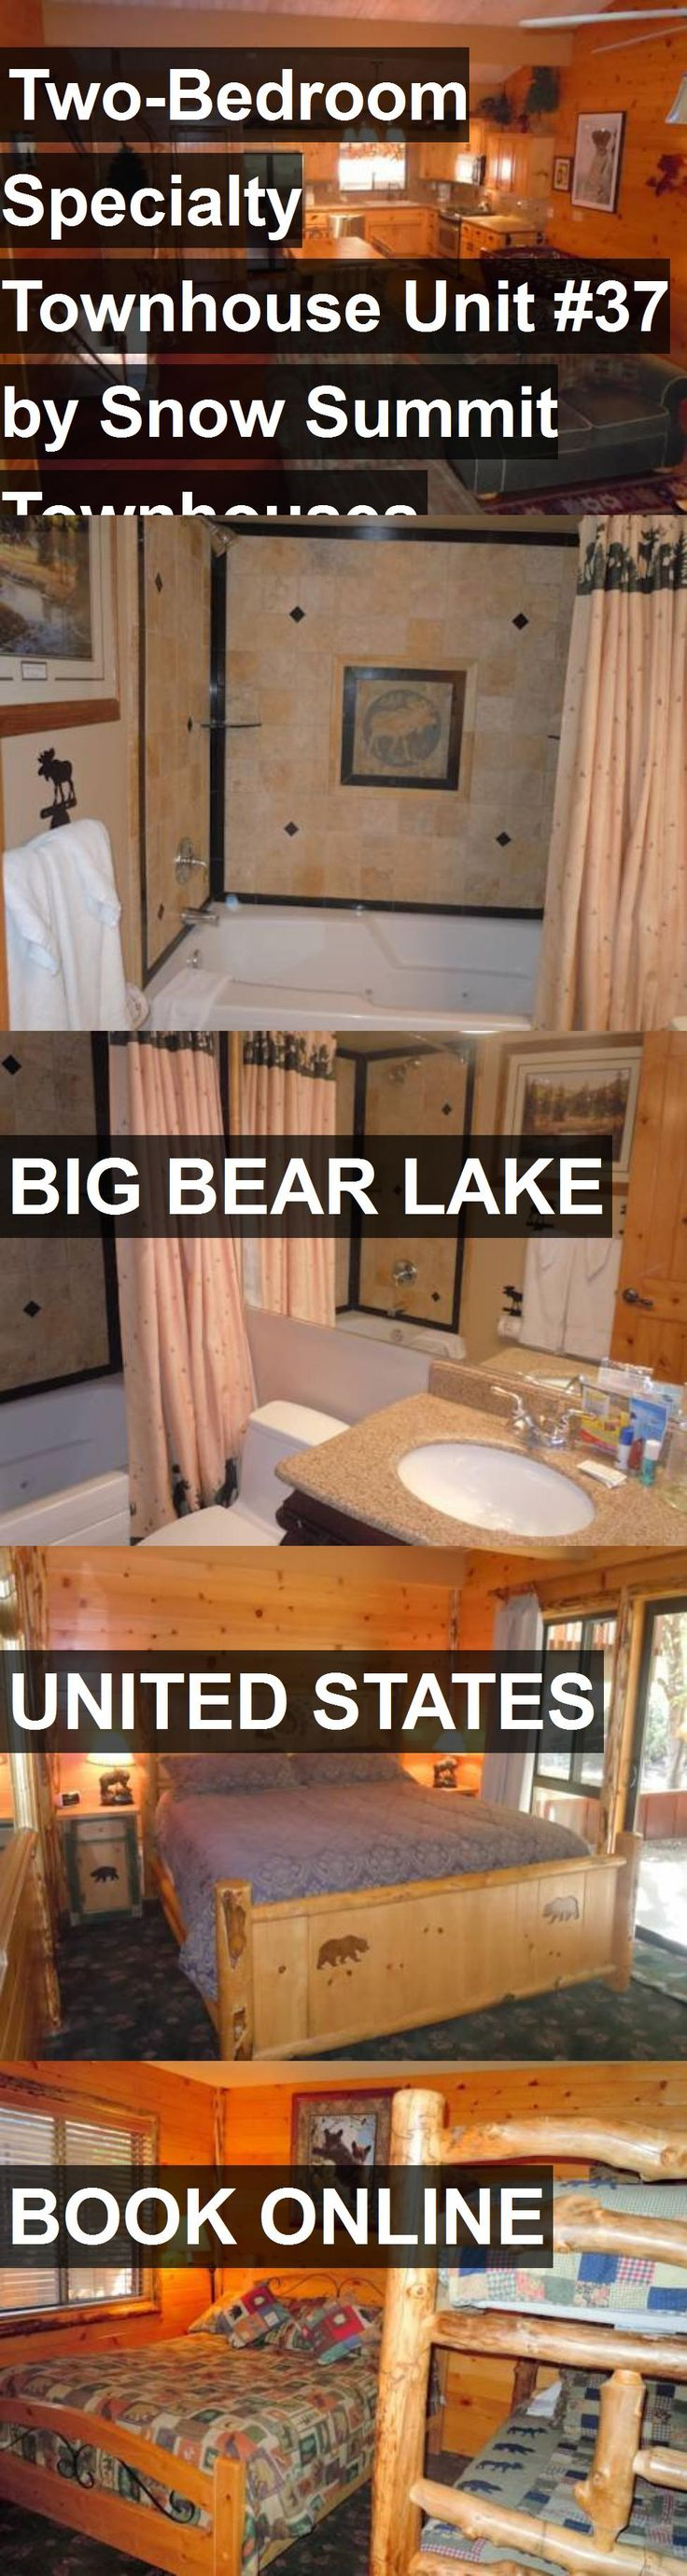 Hotel Two-Bedroom Specialty Townhouse Unit #37 by Snow Summit Townhouses in Big Bear Lake, United States. For more information, photos, reviews and best prices please follow the link. #UnitedStates #BigBearLake #travel #vacation #hotel